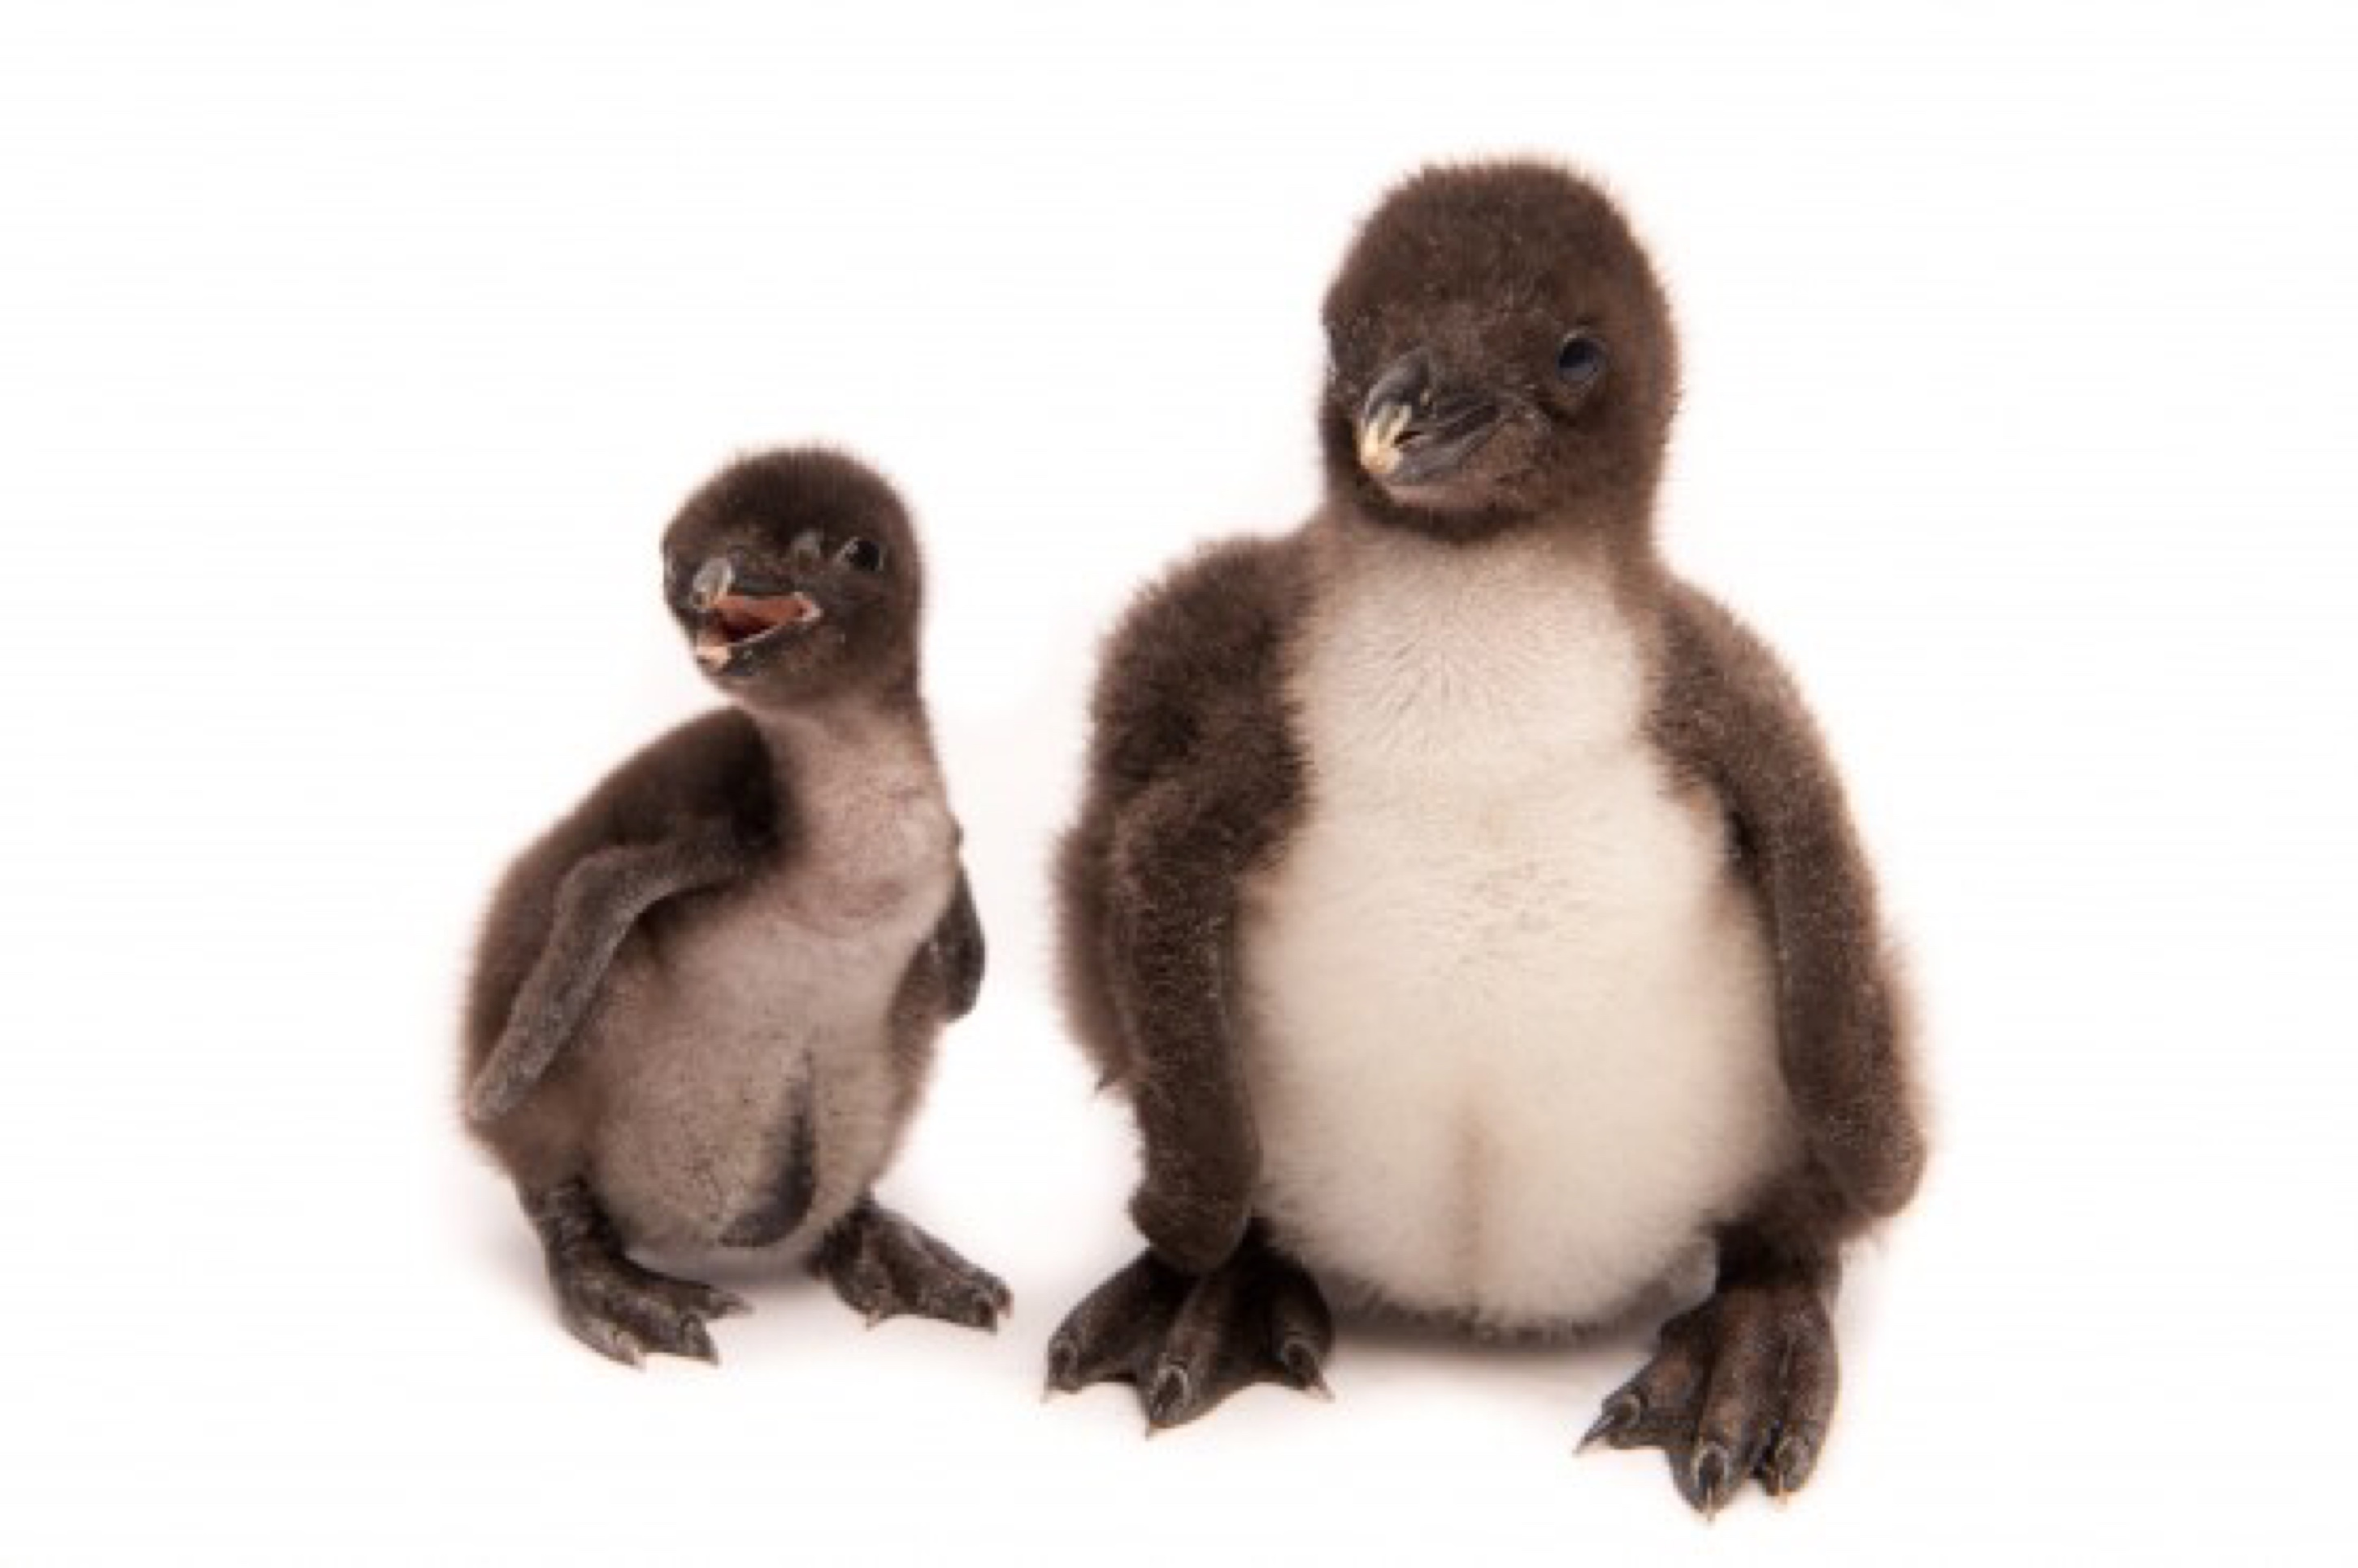 I am a play therapist and purchased these items for my animal collection The penguins are a great size and the family style with the different types of penguins is